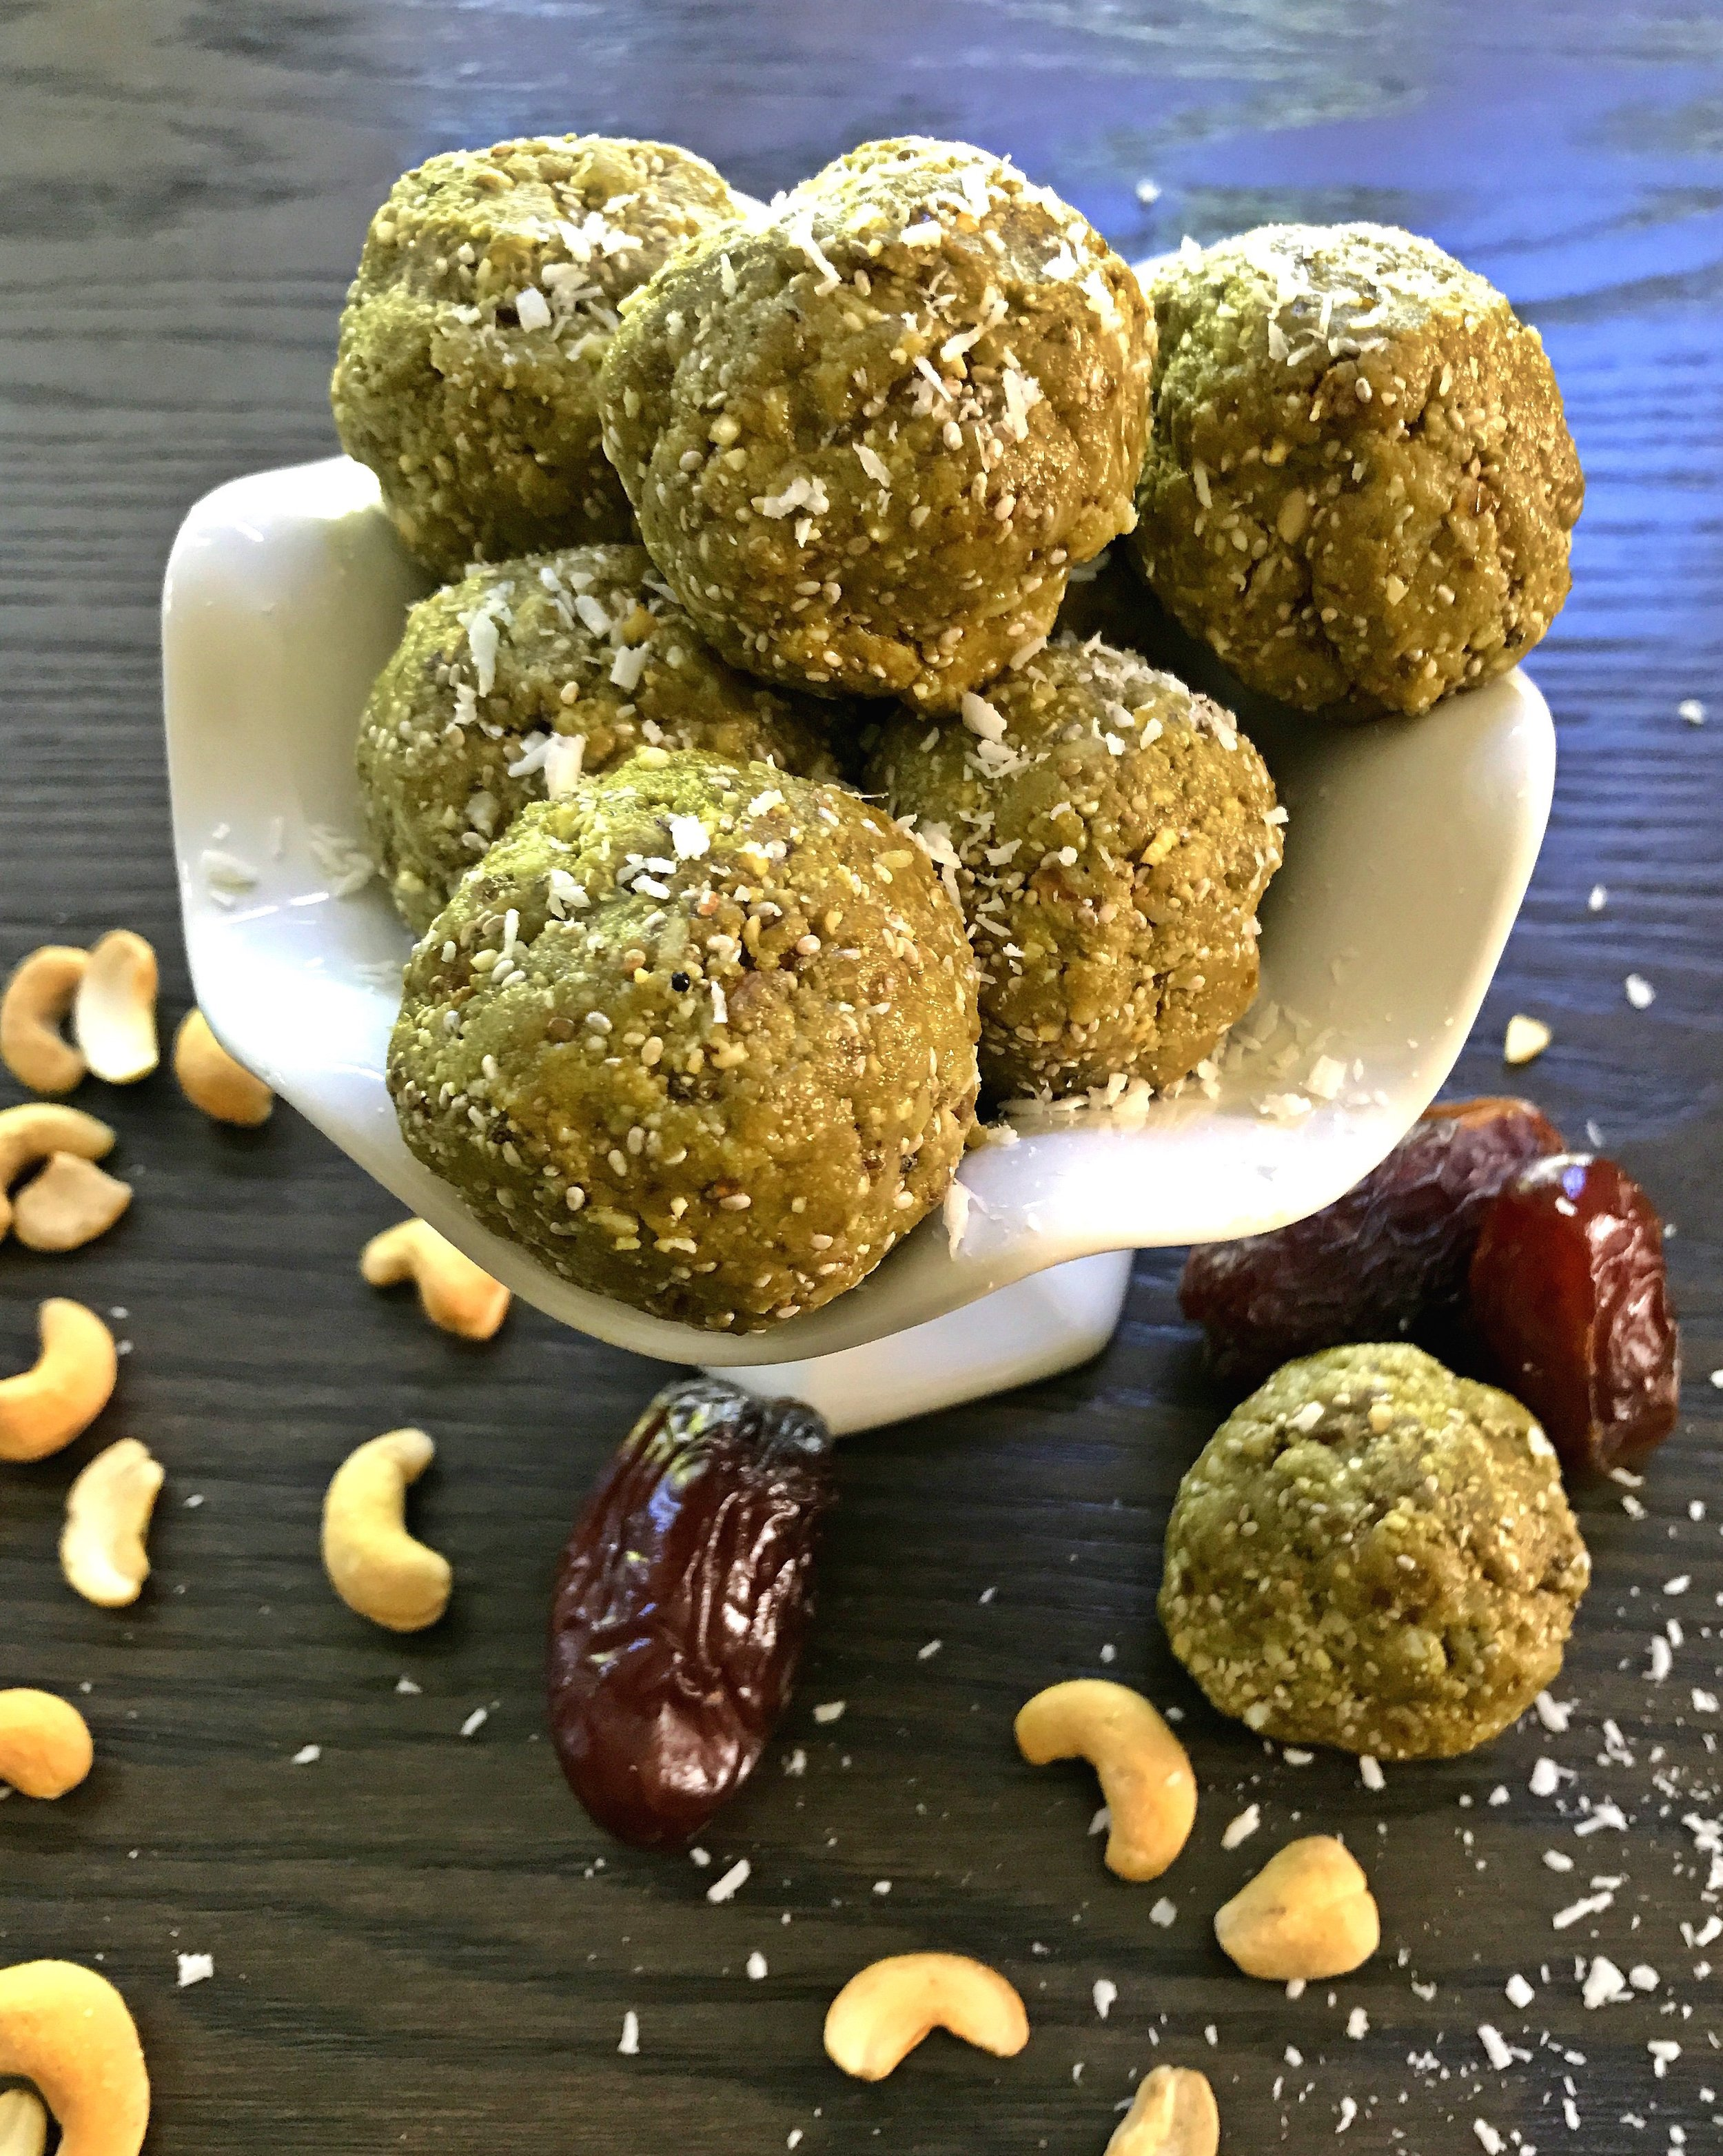 My 3 kids love to test my recipes.  This is a photo of some Matcha Cashew Coconut Protein Balls my eldest made himself.